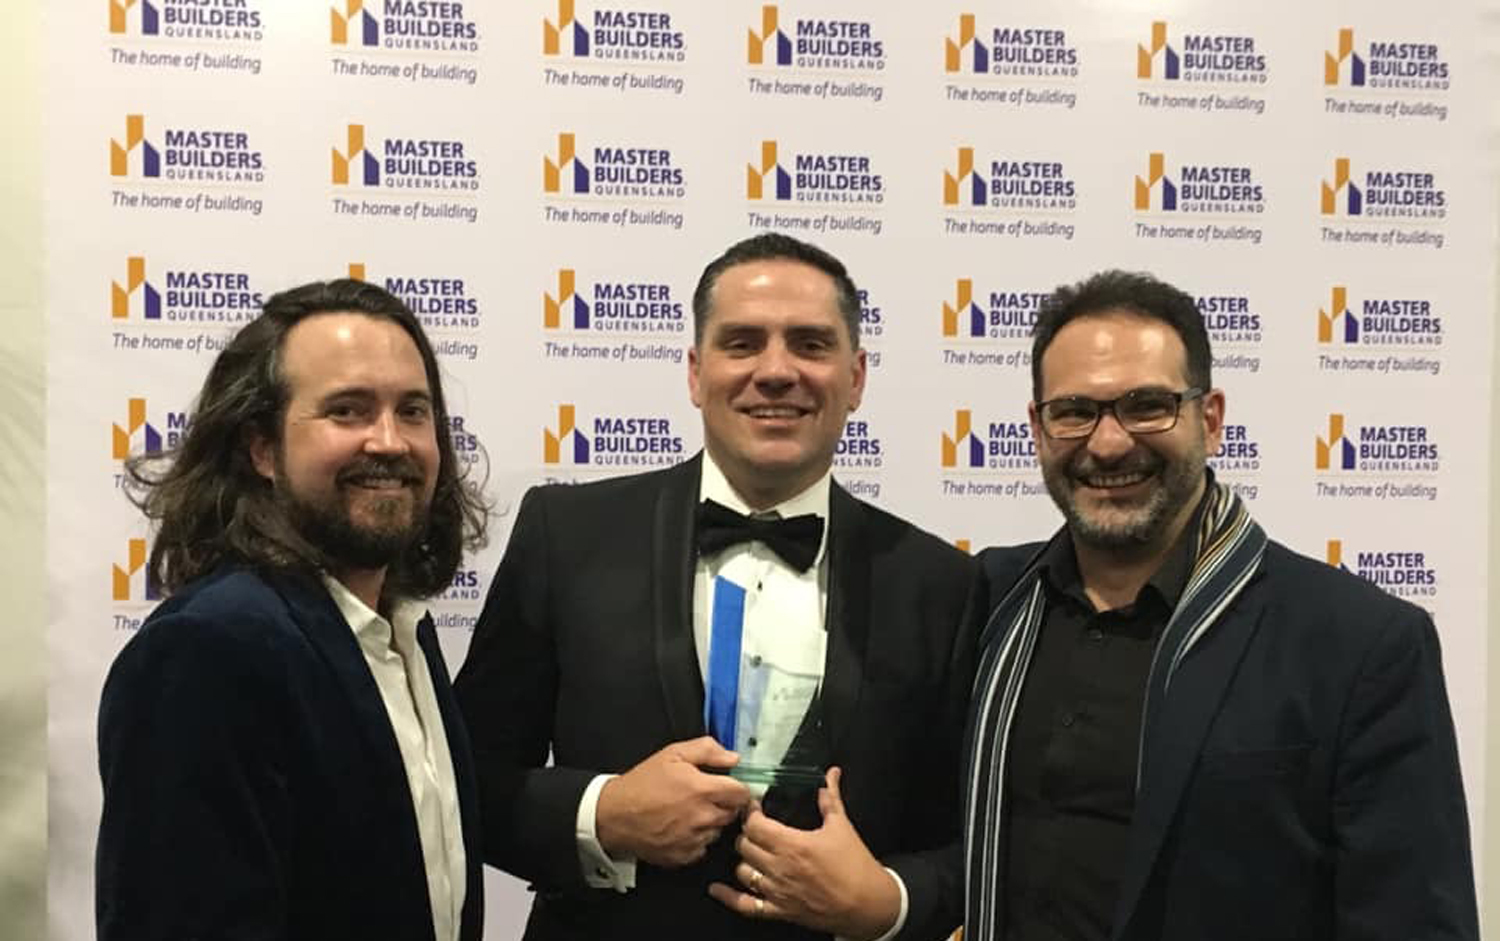 Two wins for the FKG Group at the Master Builders Brisbane Housing and Construction Awards evening